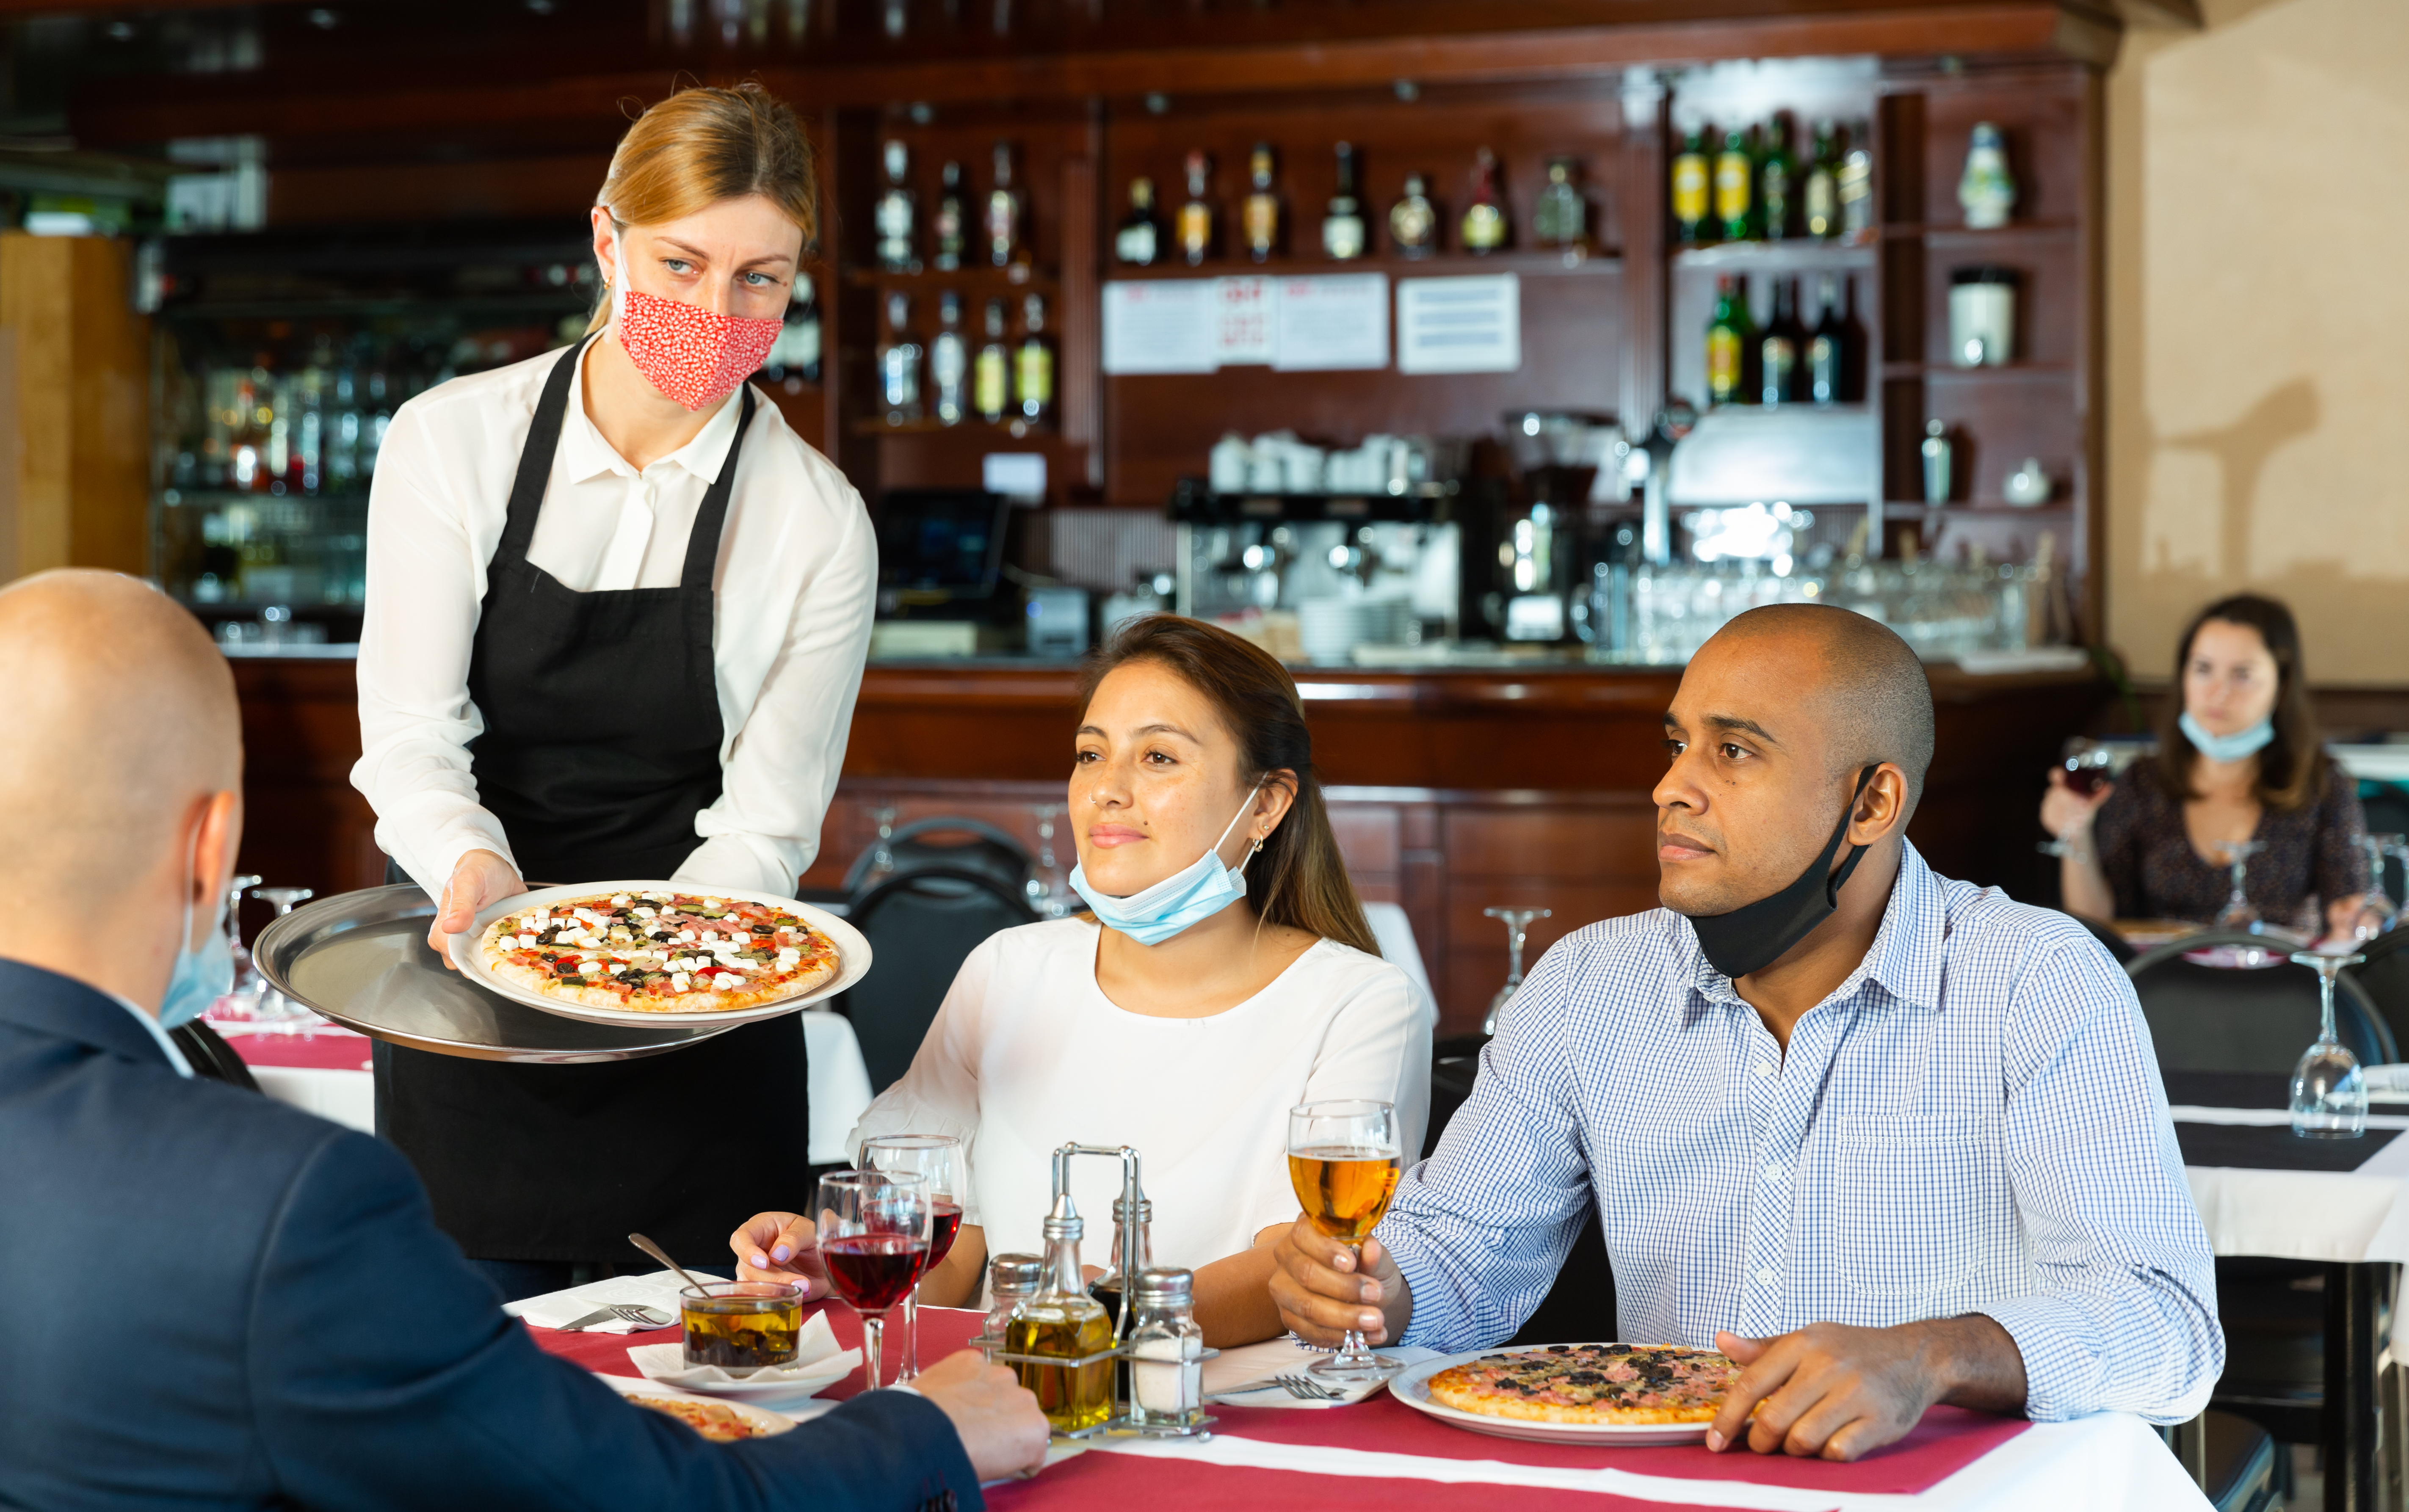 A waitress with a mask dropping off pizza to a table of four.